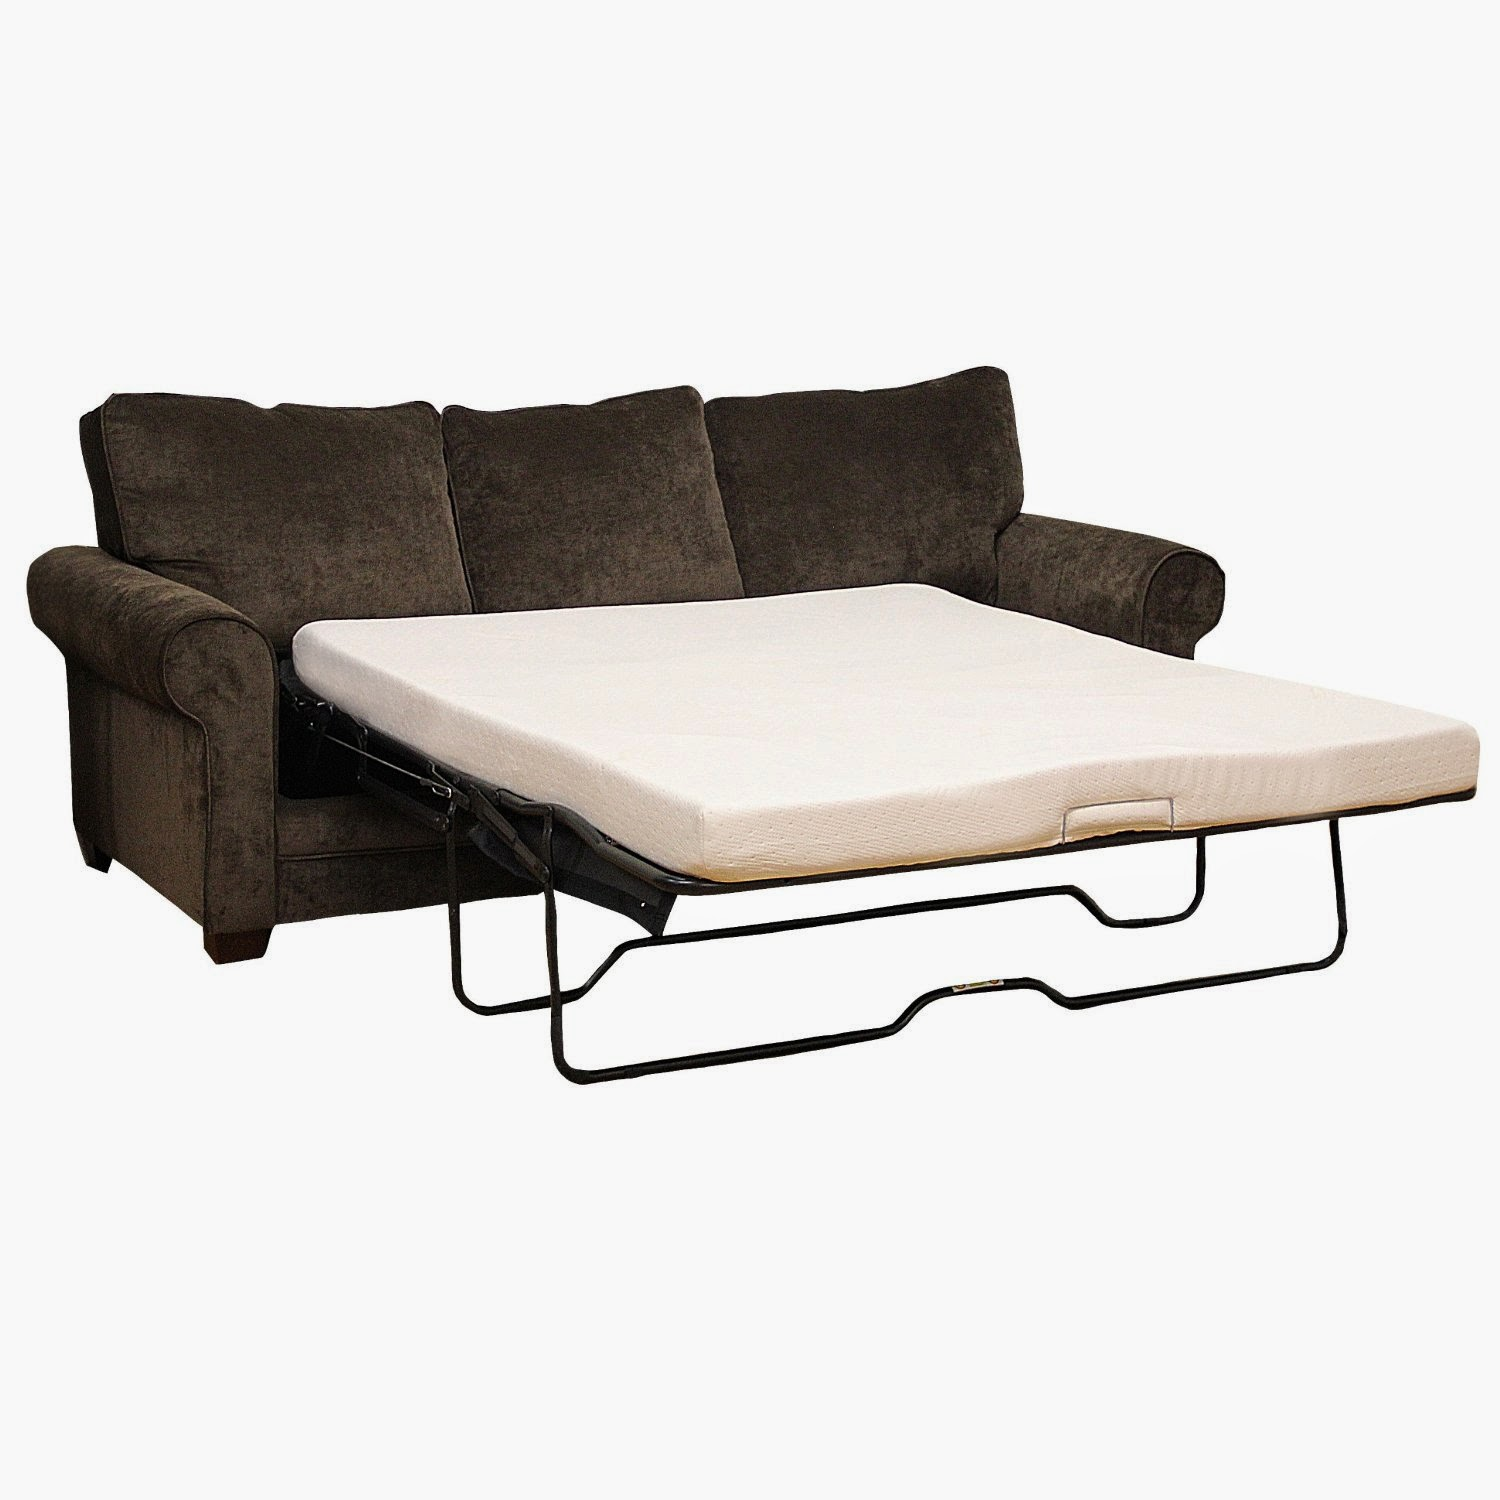 Fold Out Chair Sofa Fold Away Bed Kids Fold Out Chair Sofa  : classic fold out couch bed from mattressessale.eu size 1500 x 1500 jpeg 153kB